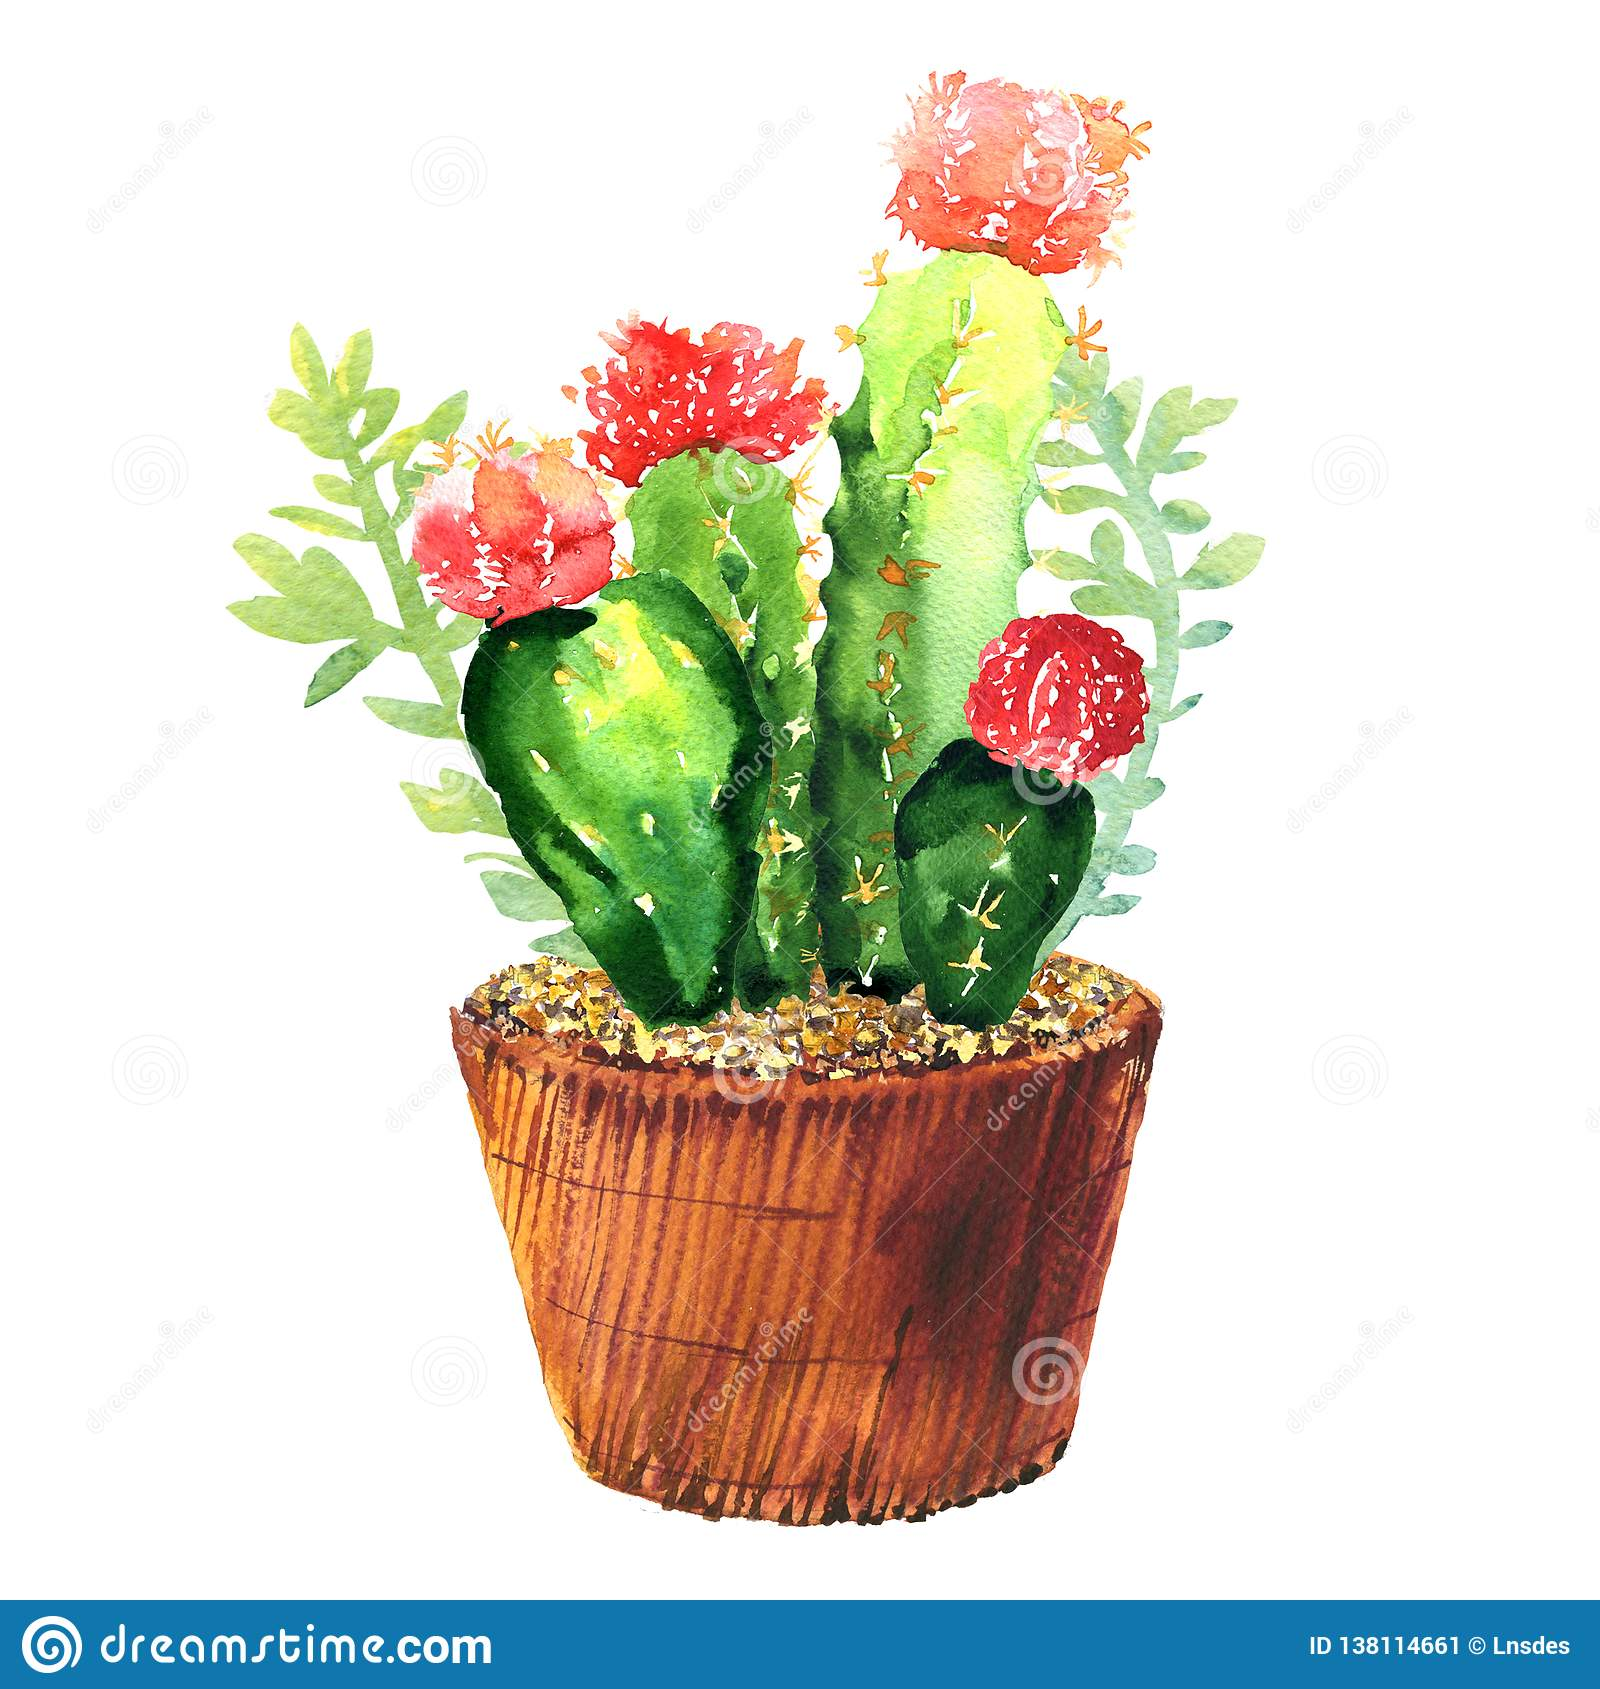 Cactus with pink flower, succulent in pod, tropical blossom cactus species, flowering green house plant, flowers design